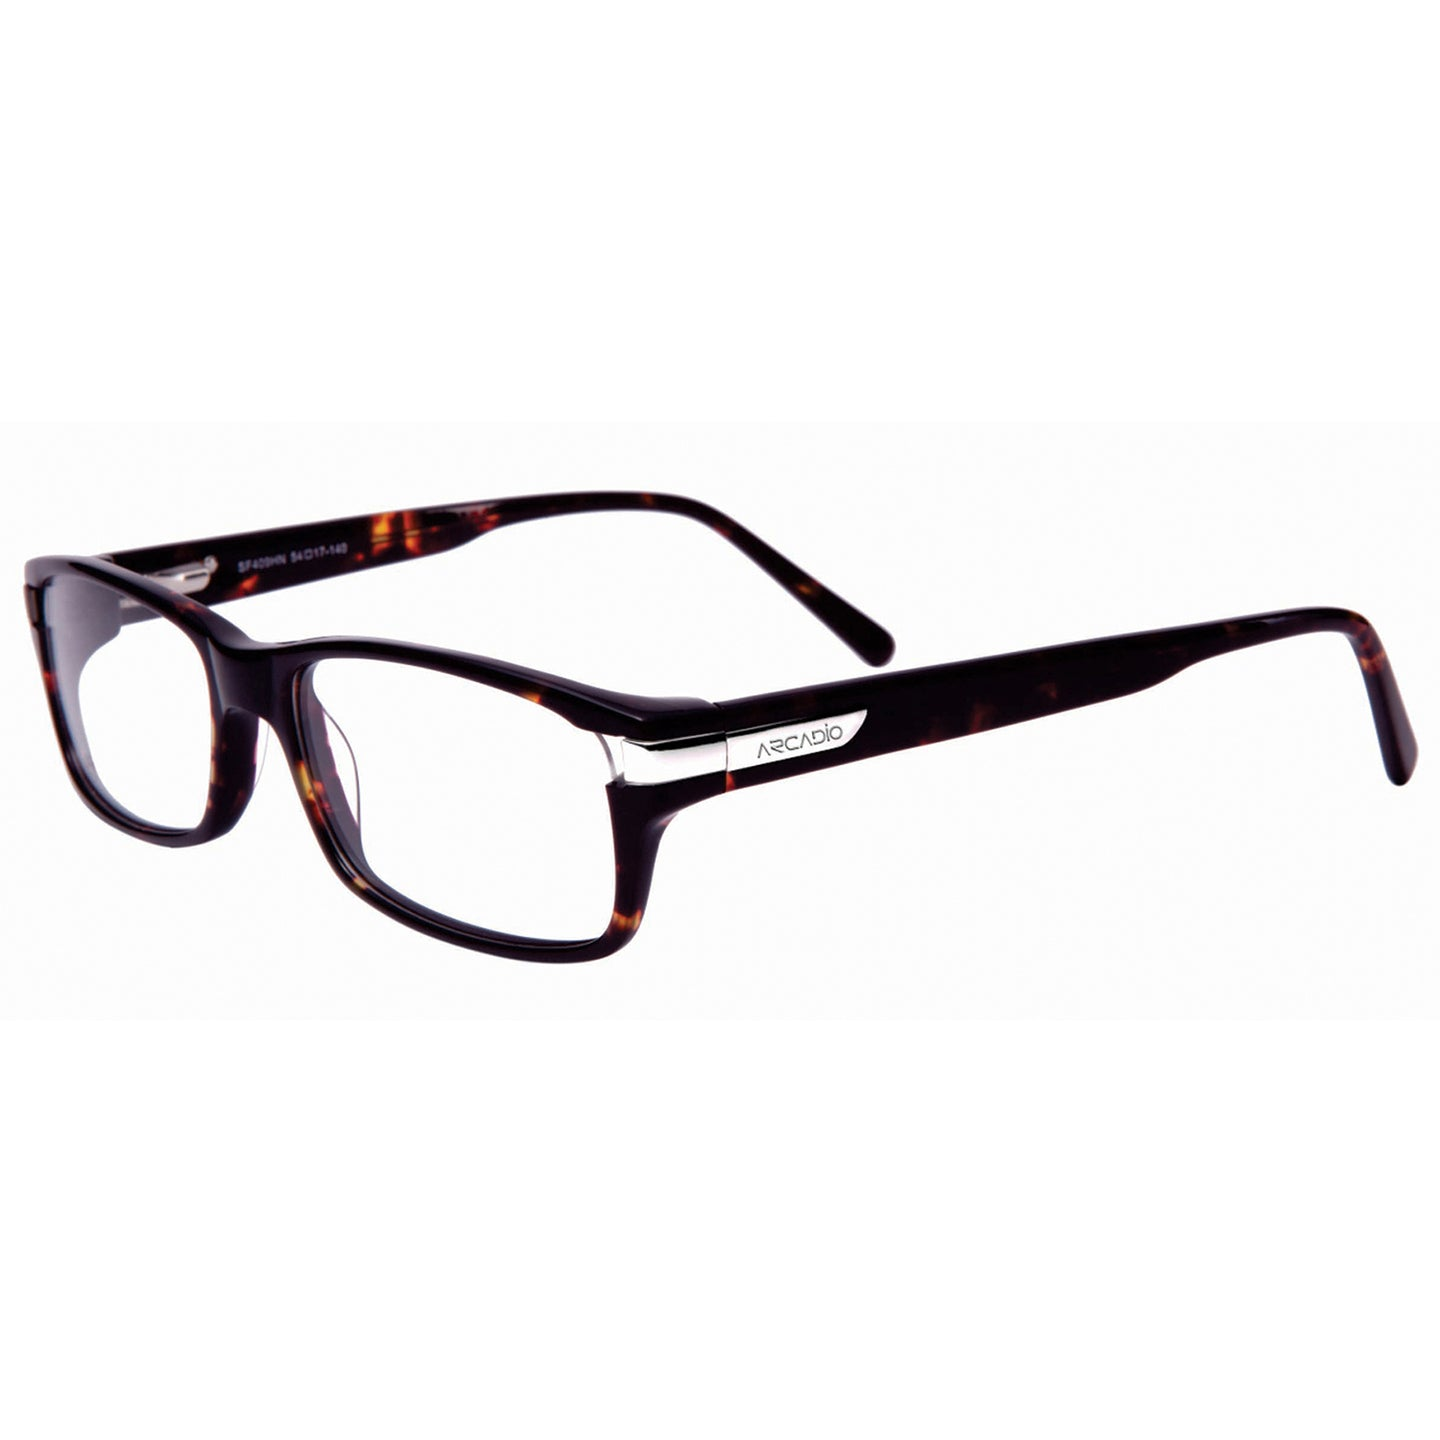 Two Toned Teen Shell Frame - SF409